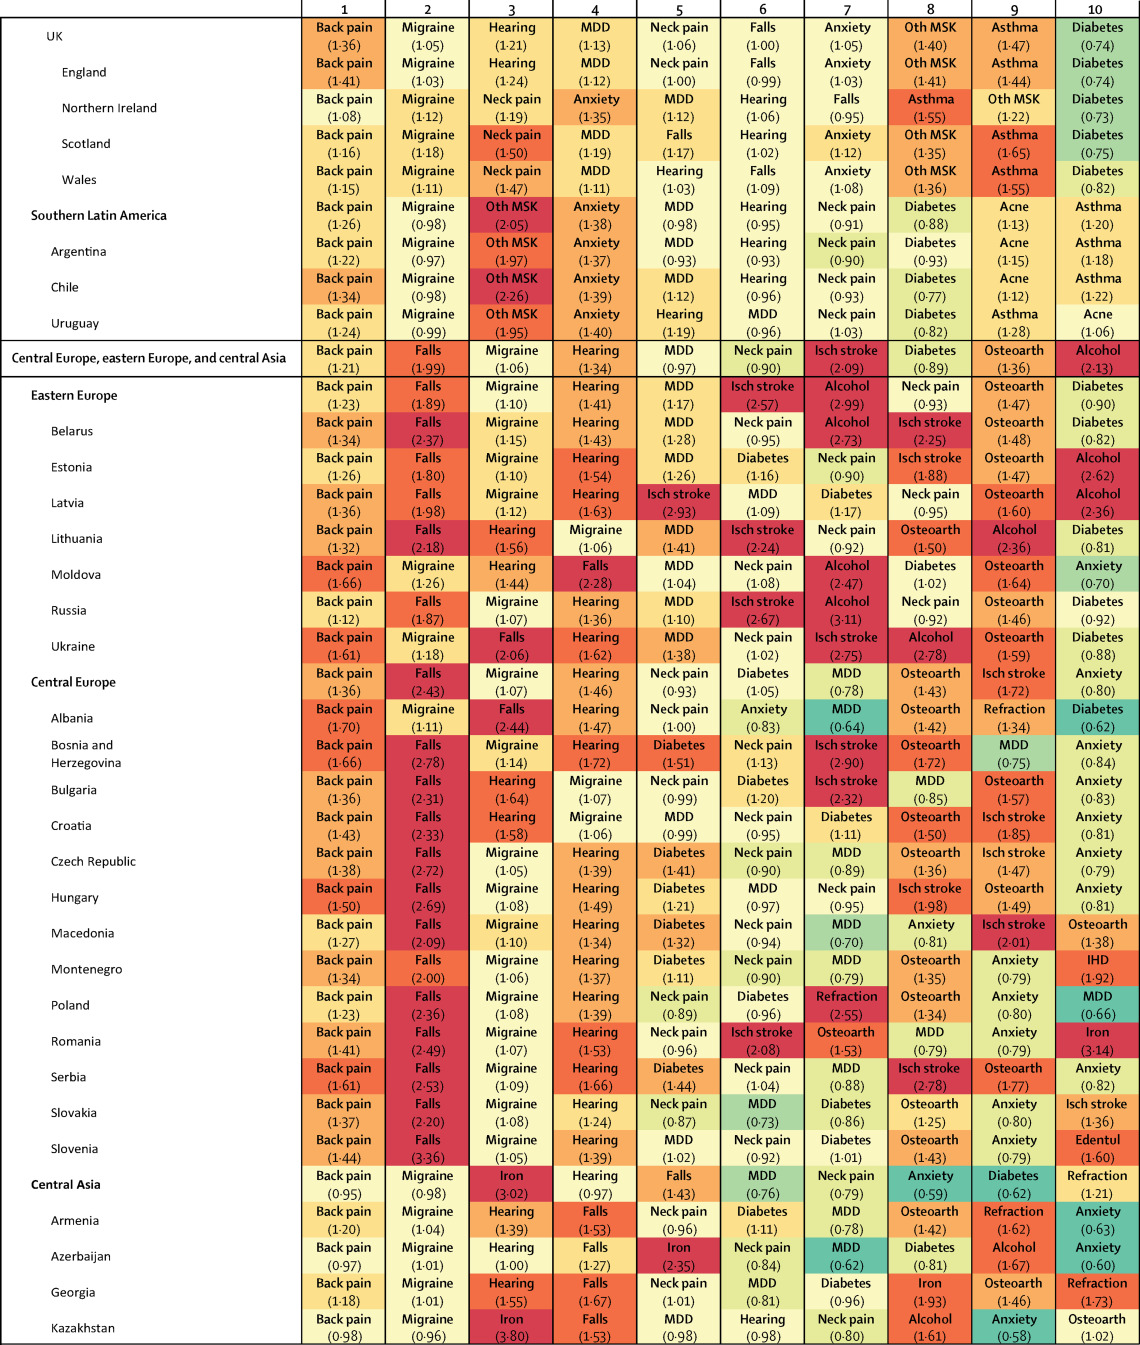 Global, regional, and national incidence, prevalence, and